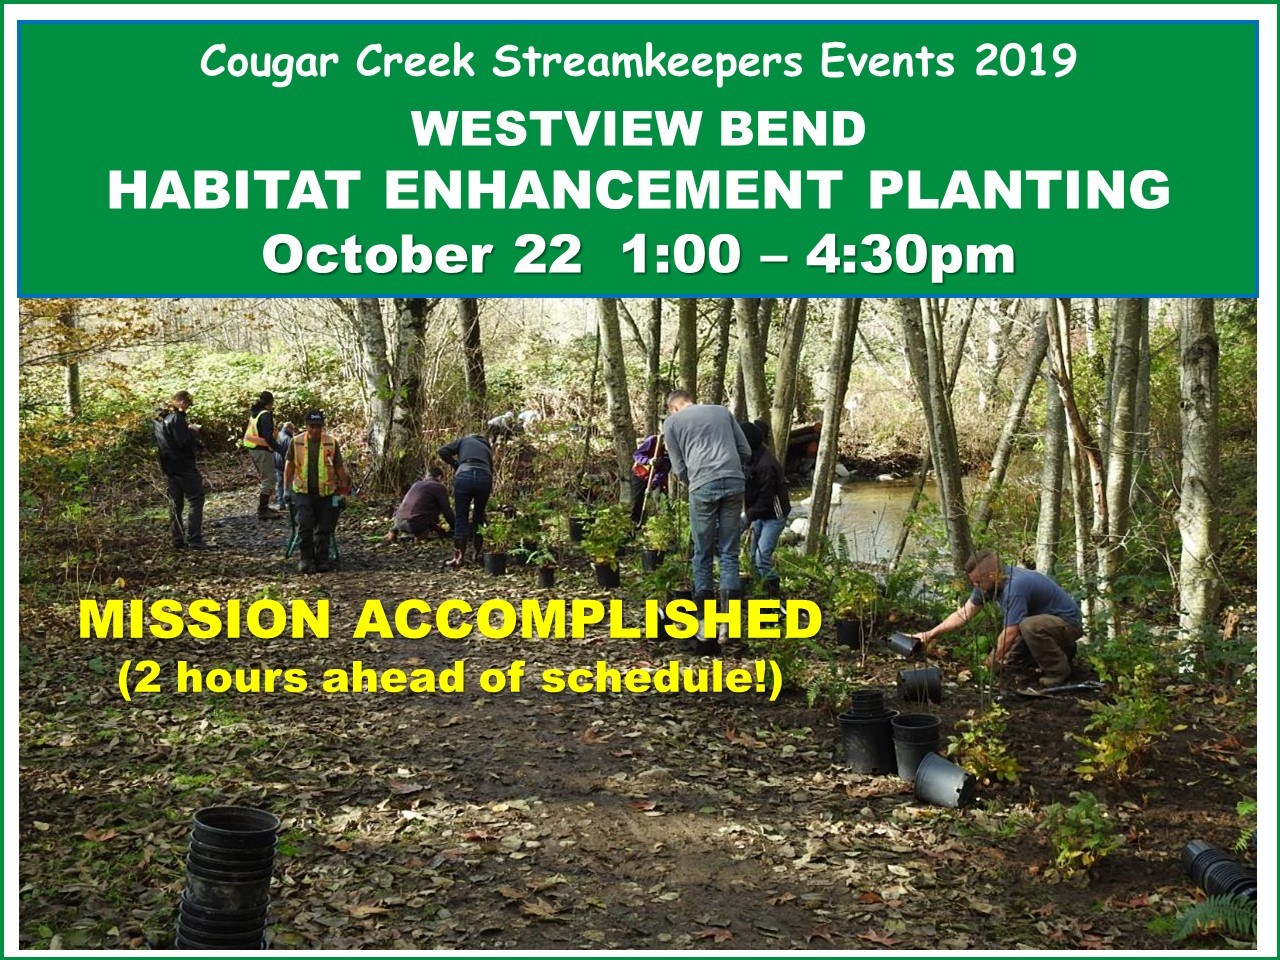 Westview Bend habitat enhancement planting